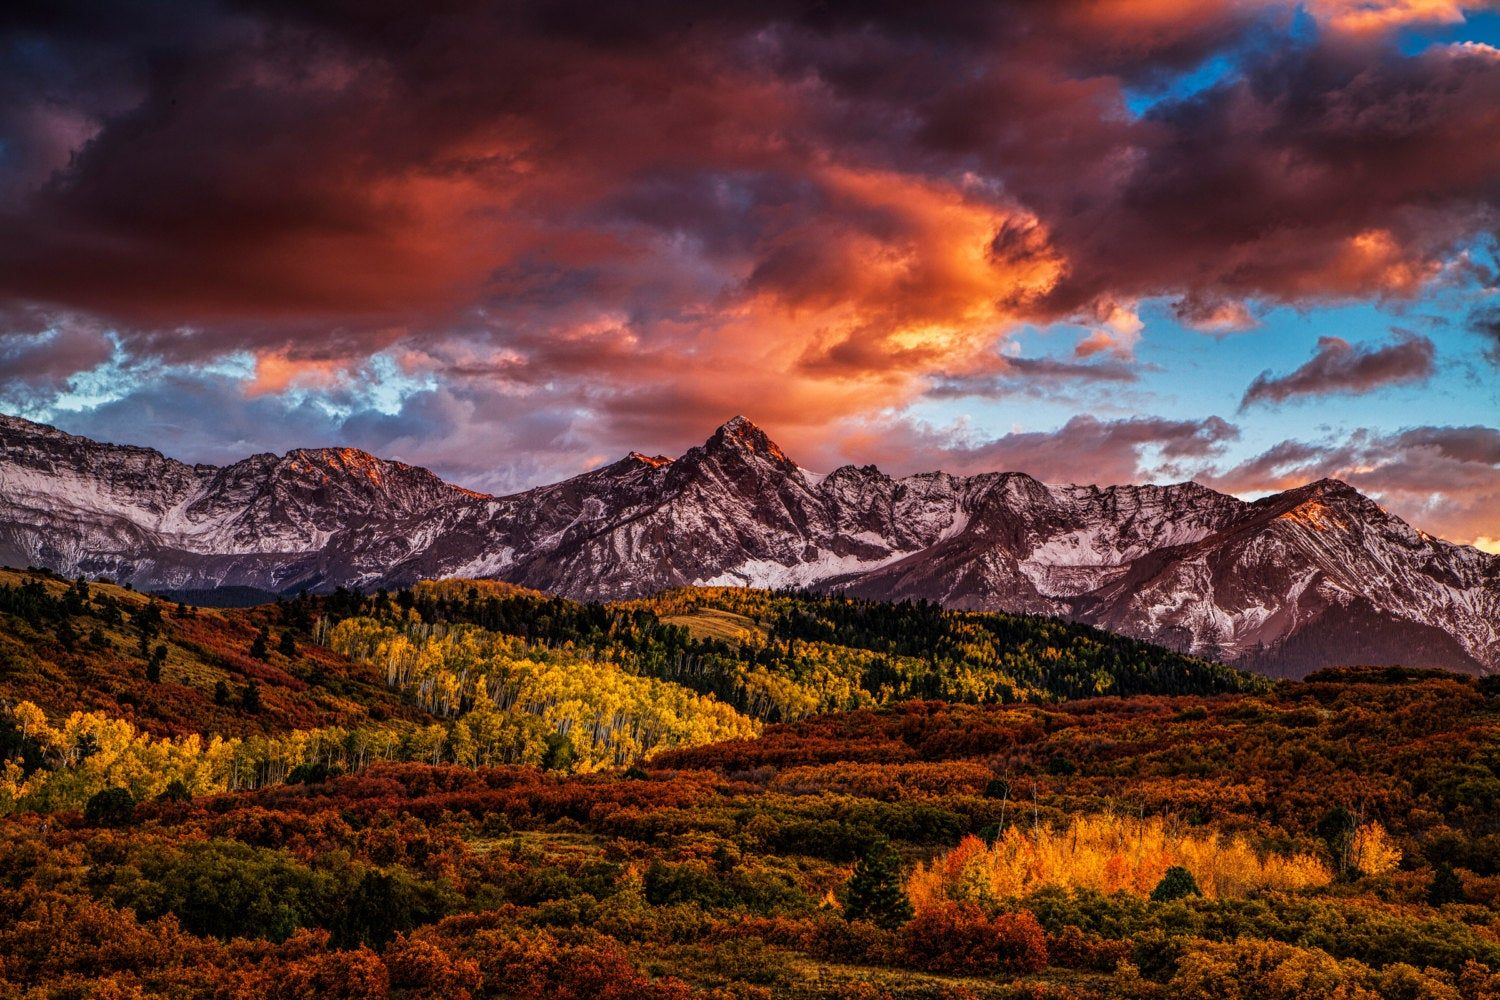 Colorado Wall Art Of An Autumn Landscape Scene In The San Juan Mountains Sunset Print At The Dallas Divide Autumn Landscape Fall Pictures Colorado Wall Art